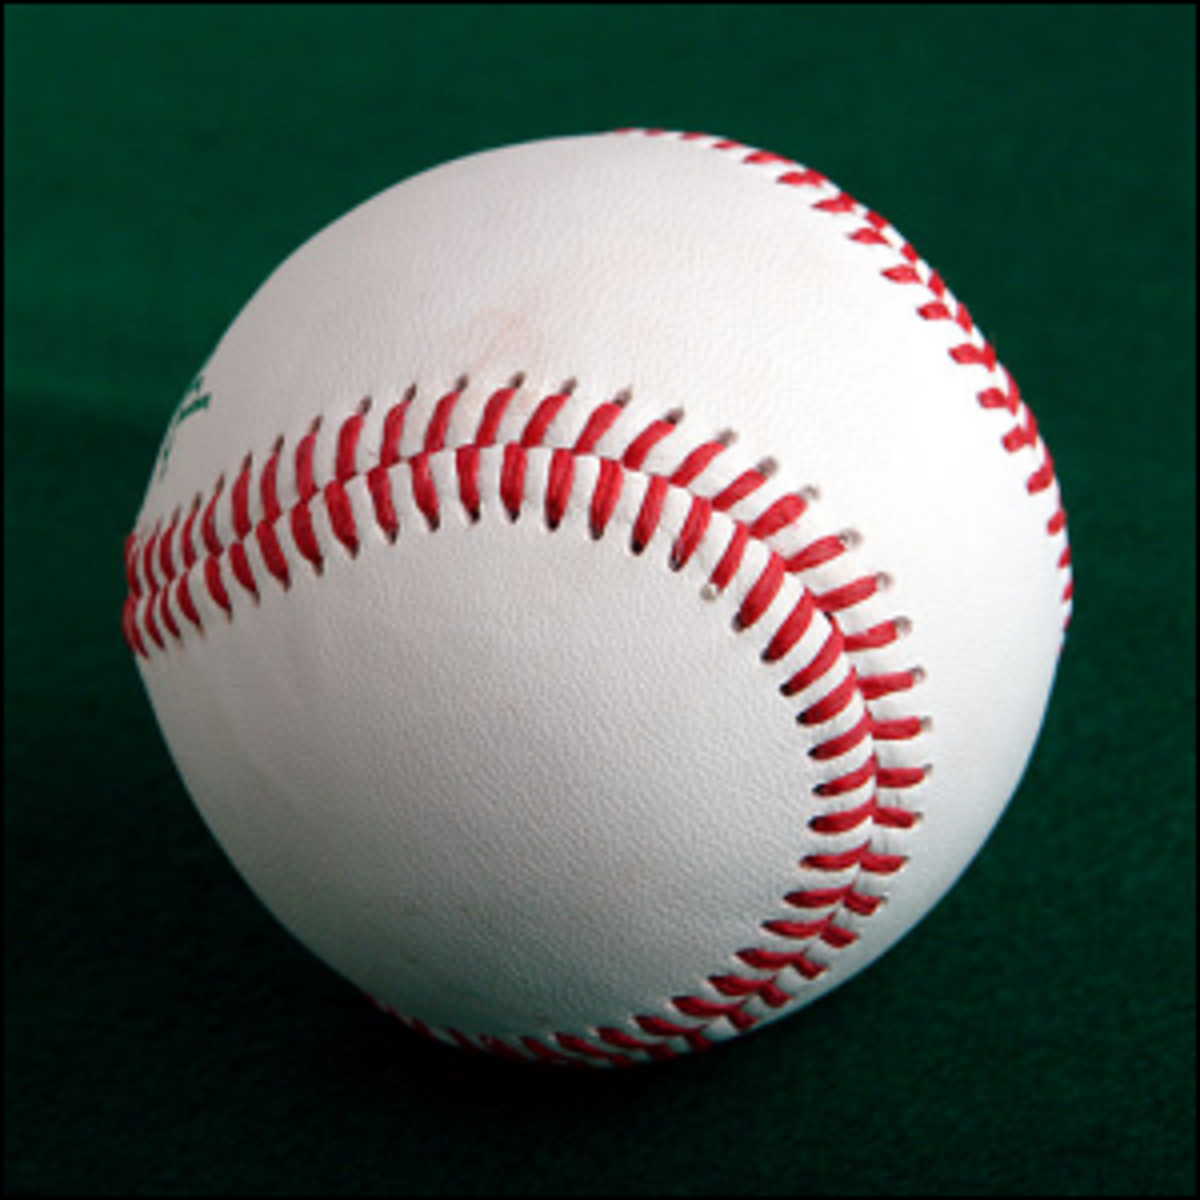 A new baseball sitting on a green cloth surface.